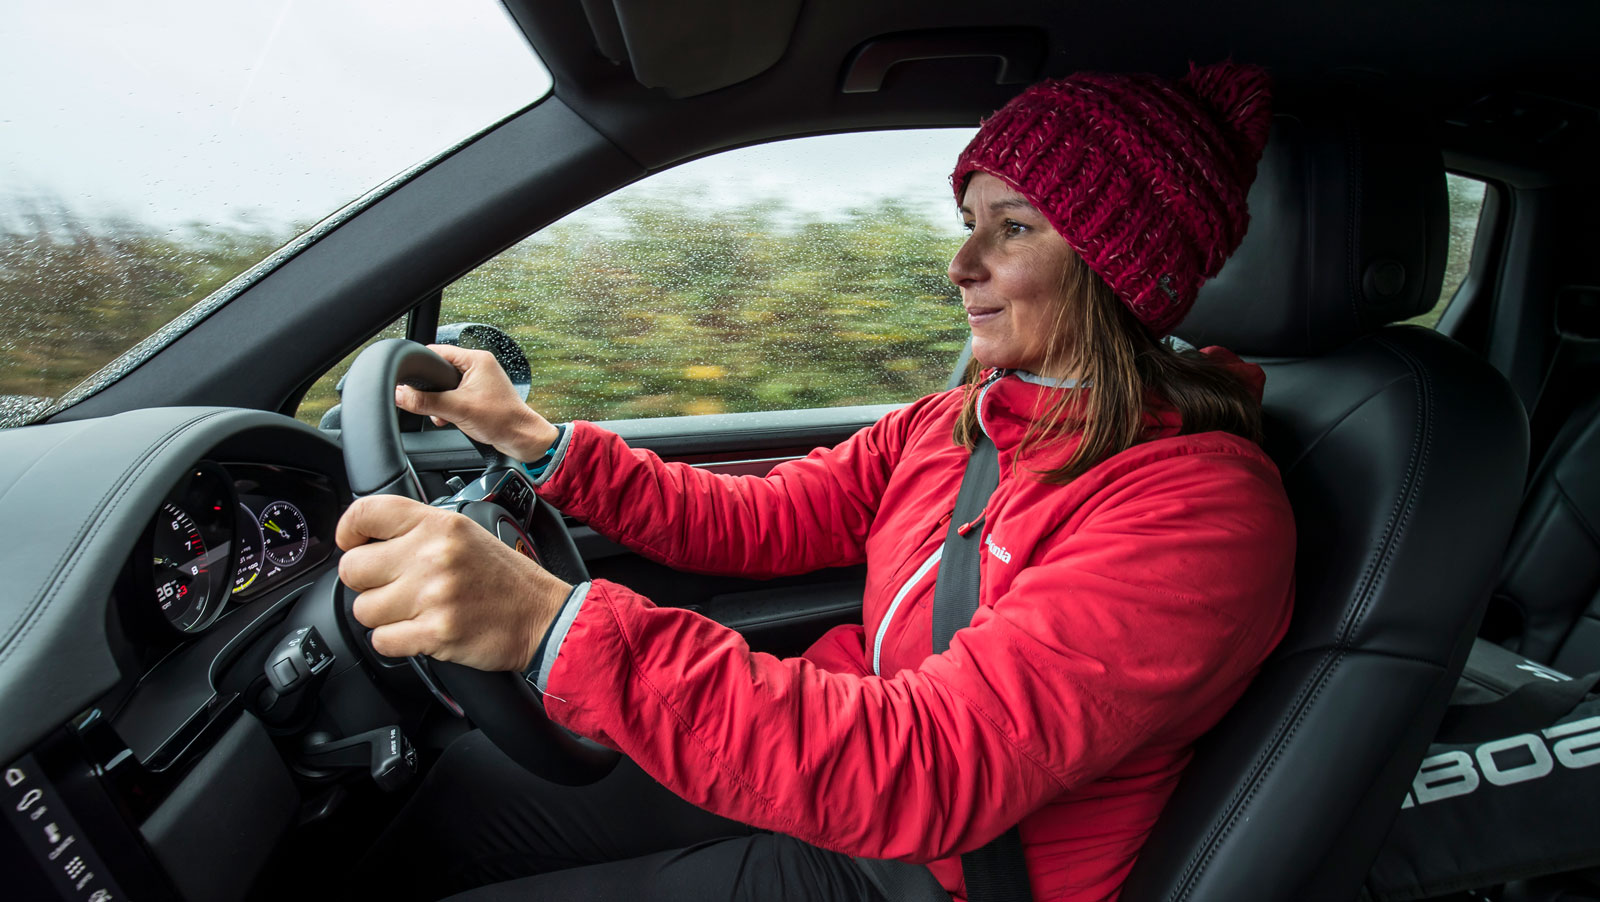 Starboard-SUP-Paddle-board-Ocean-Ambassador-Cleaning-Up-with-with-Eco-Warrior-Sian-Sykes-Porsche-Cayenne-E-Hybrid-driving